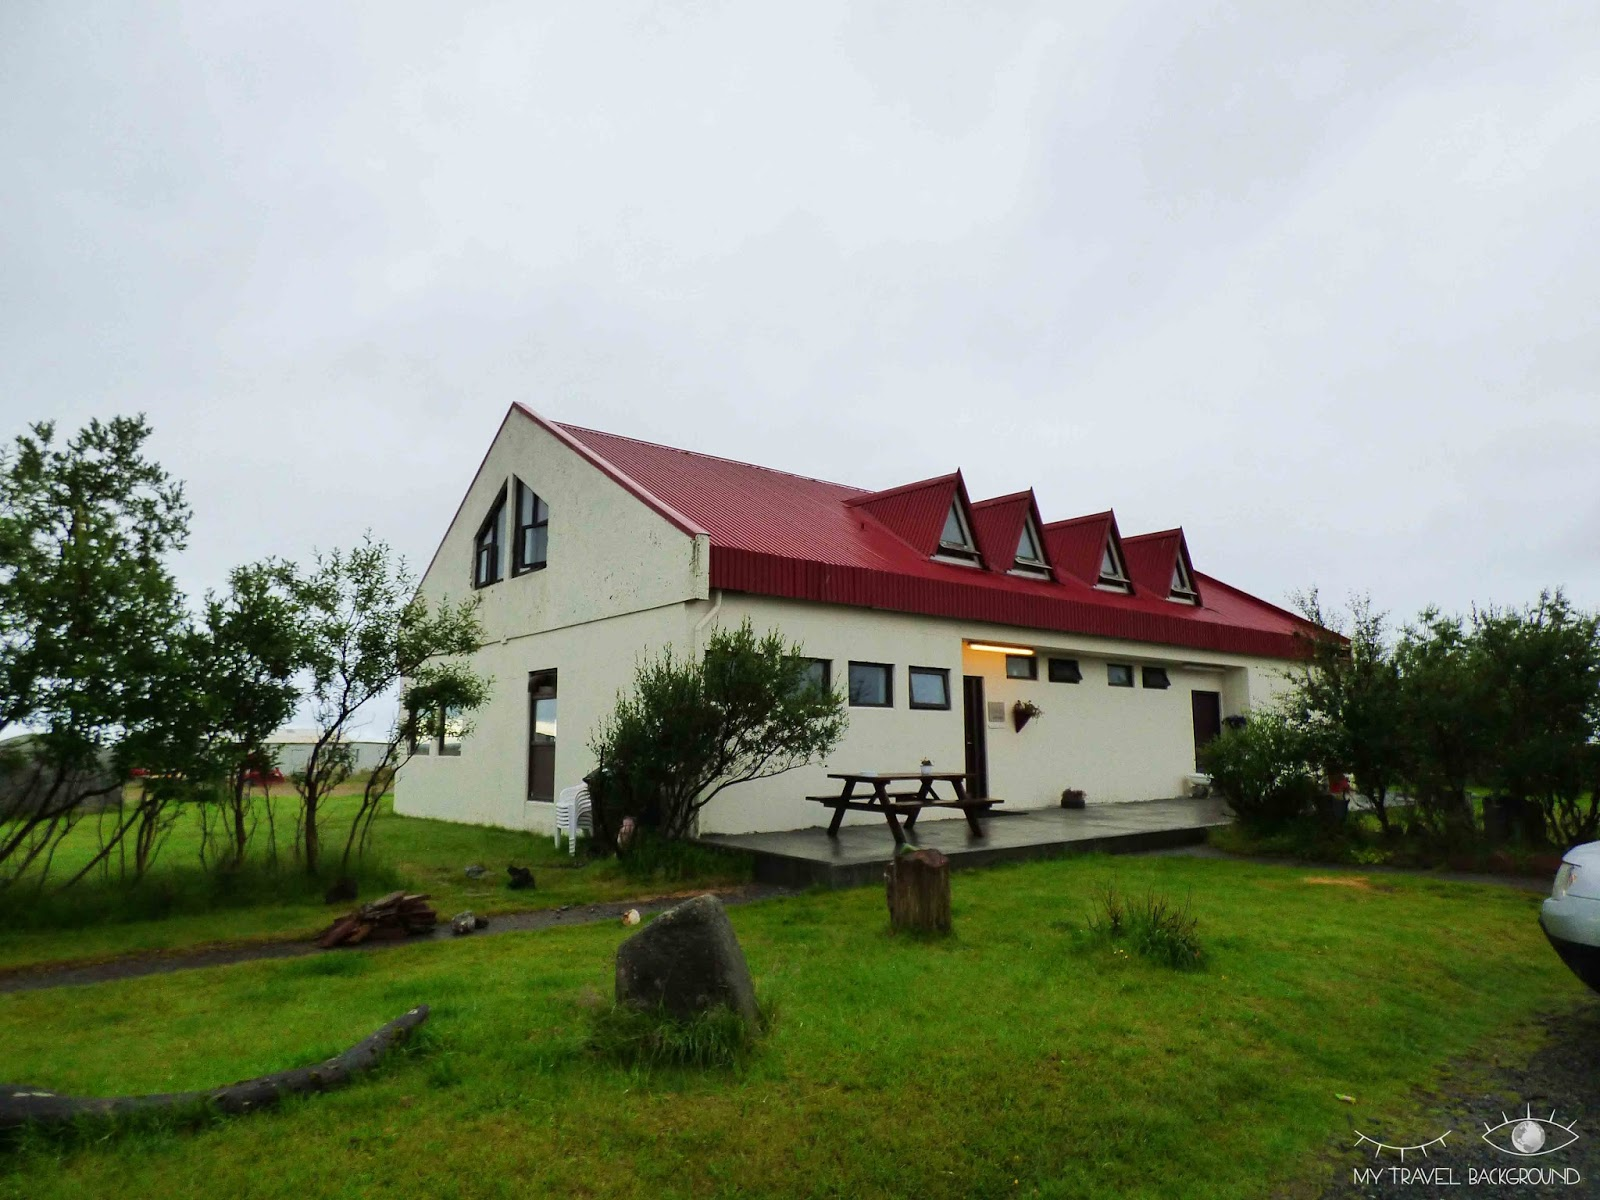 My Travel Background : mes 4 meilleurs logements testés en 2016, Heinaberg Guesthouse, Flatey,Islande